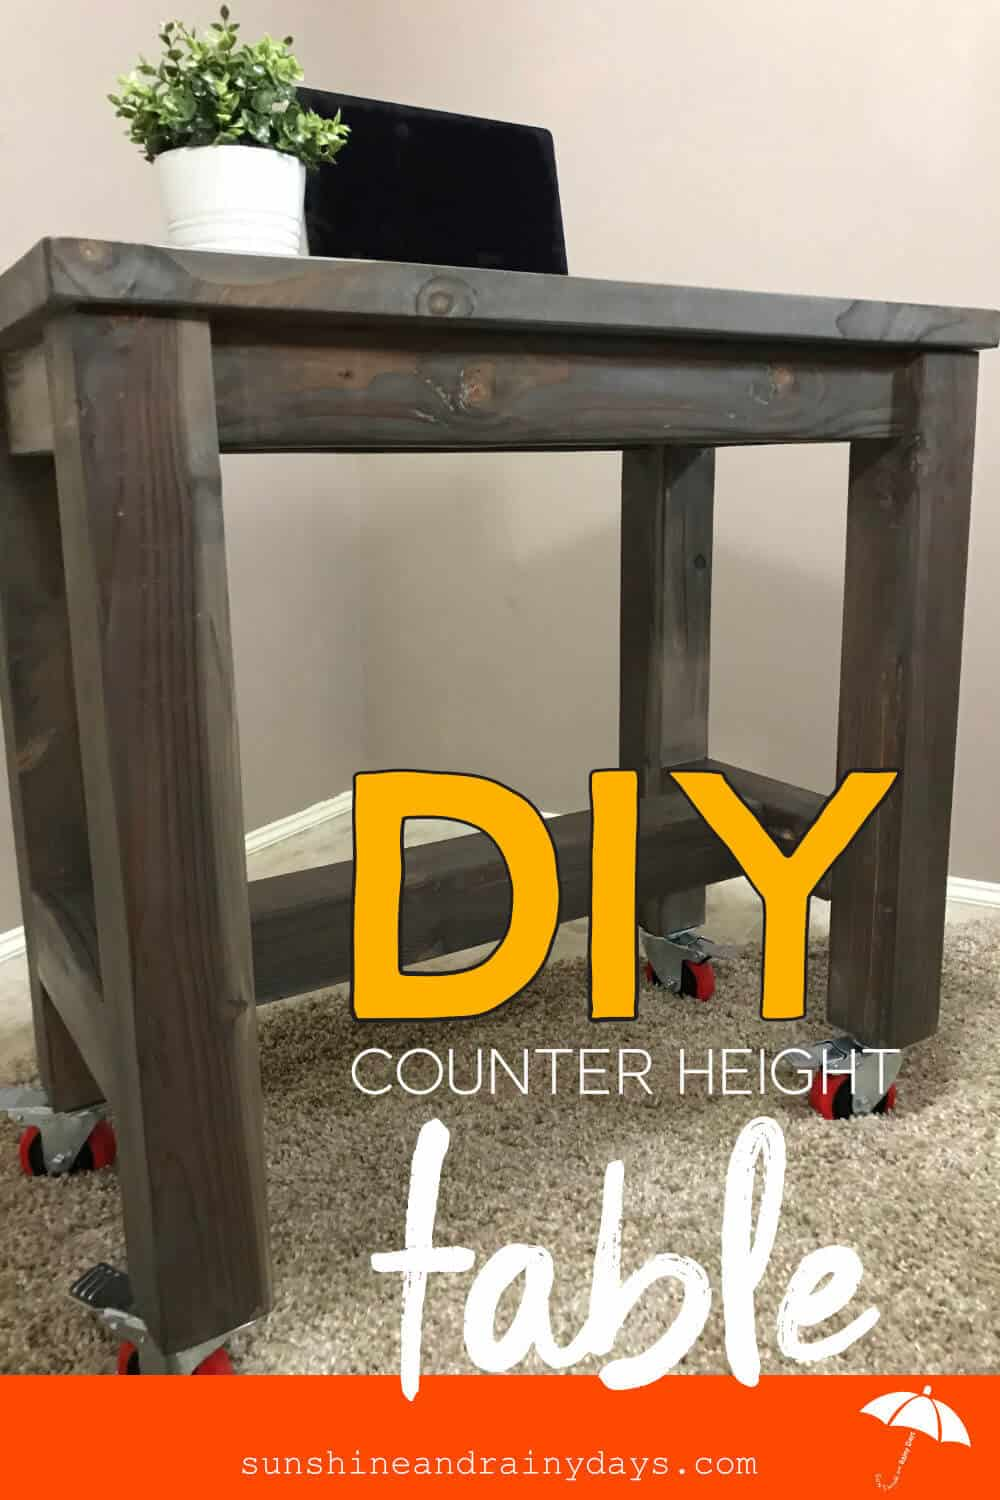 DIY Counter Height Table